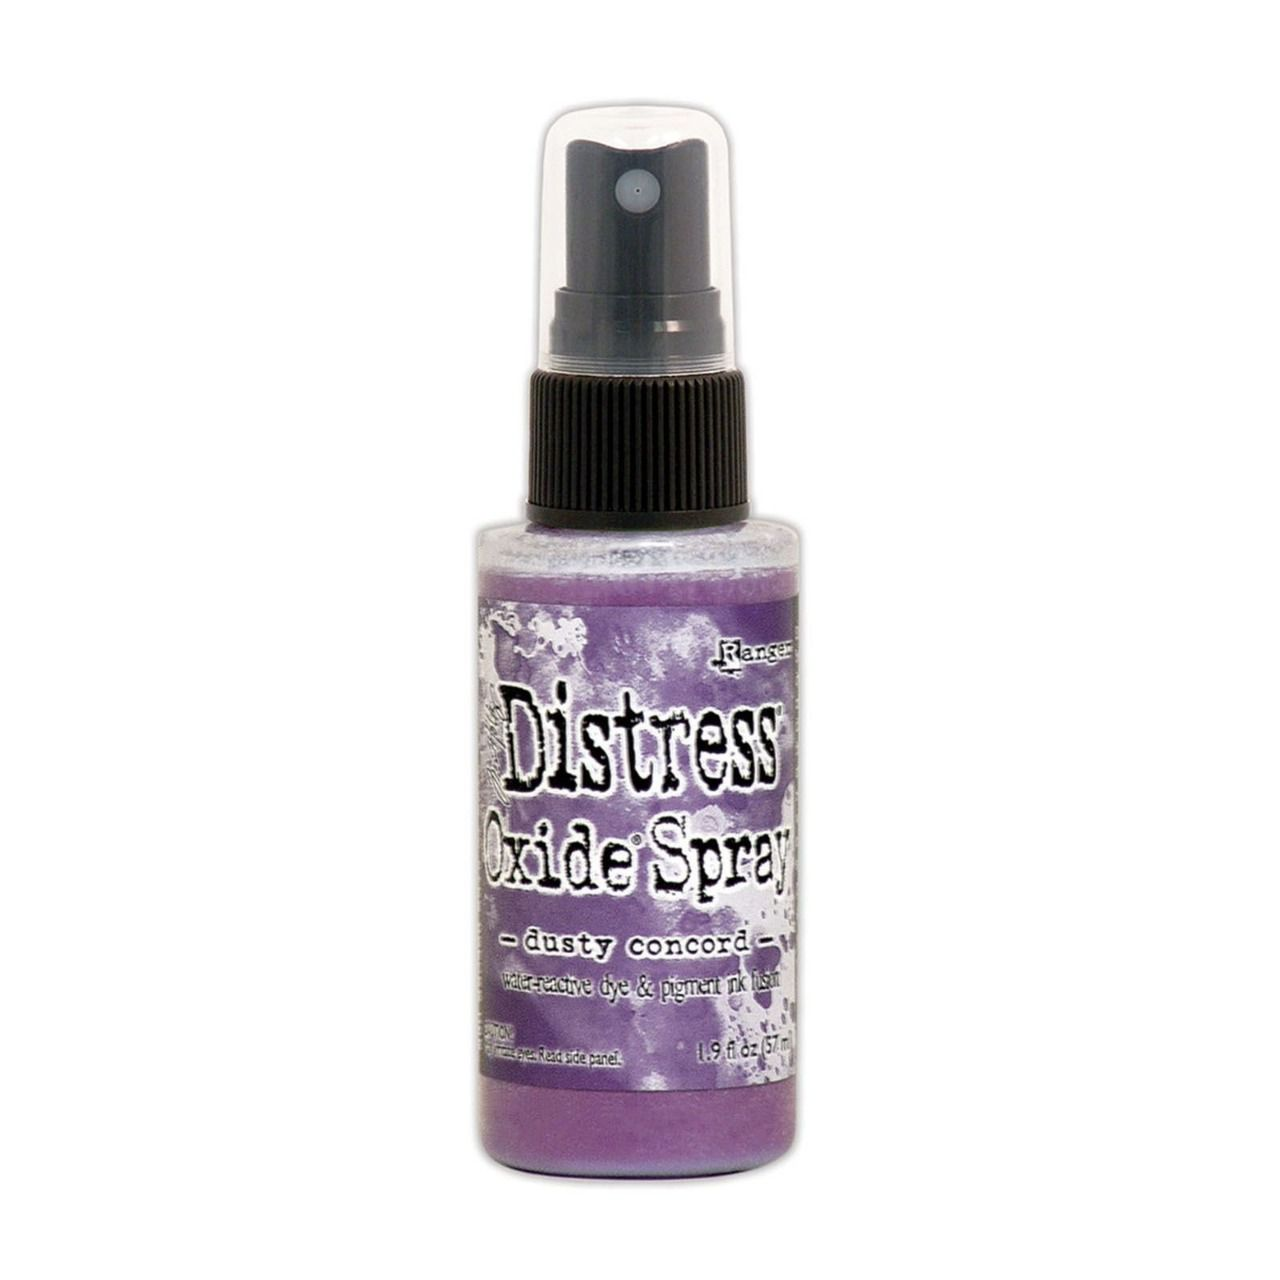 Distress spray oxide : dusty concord